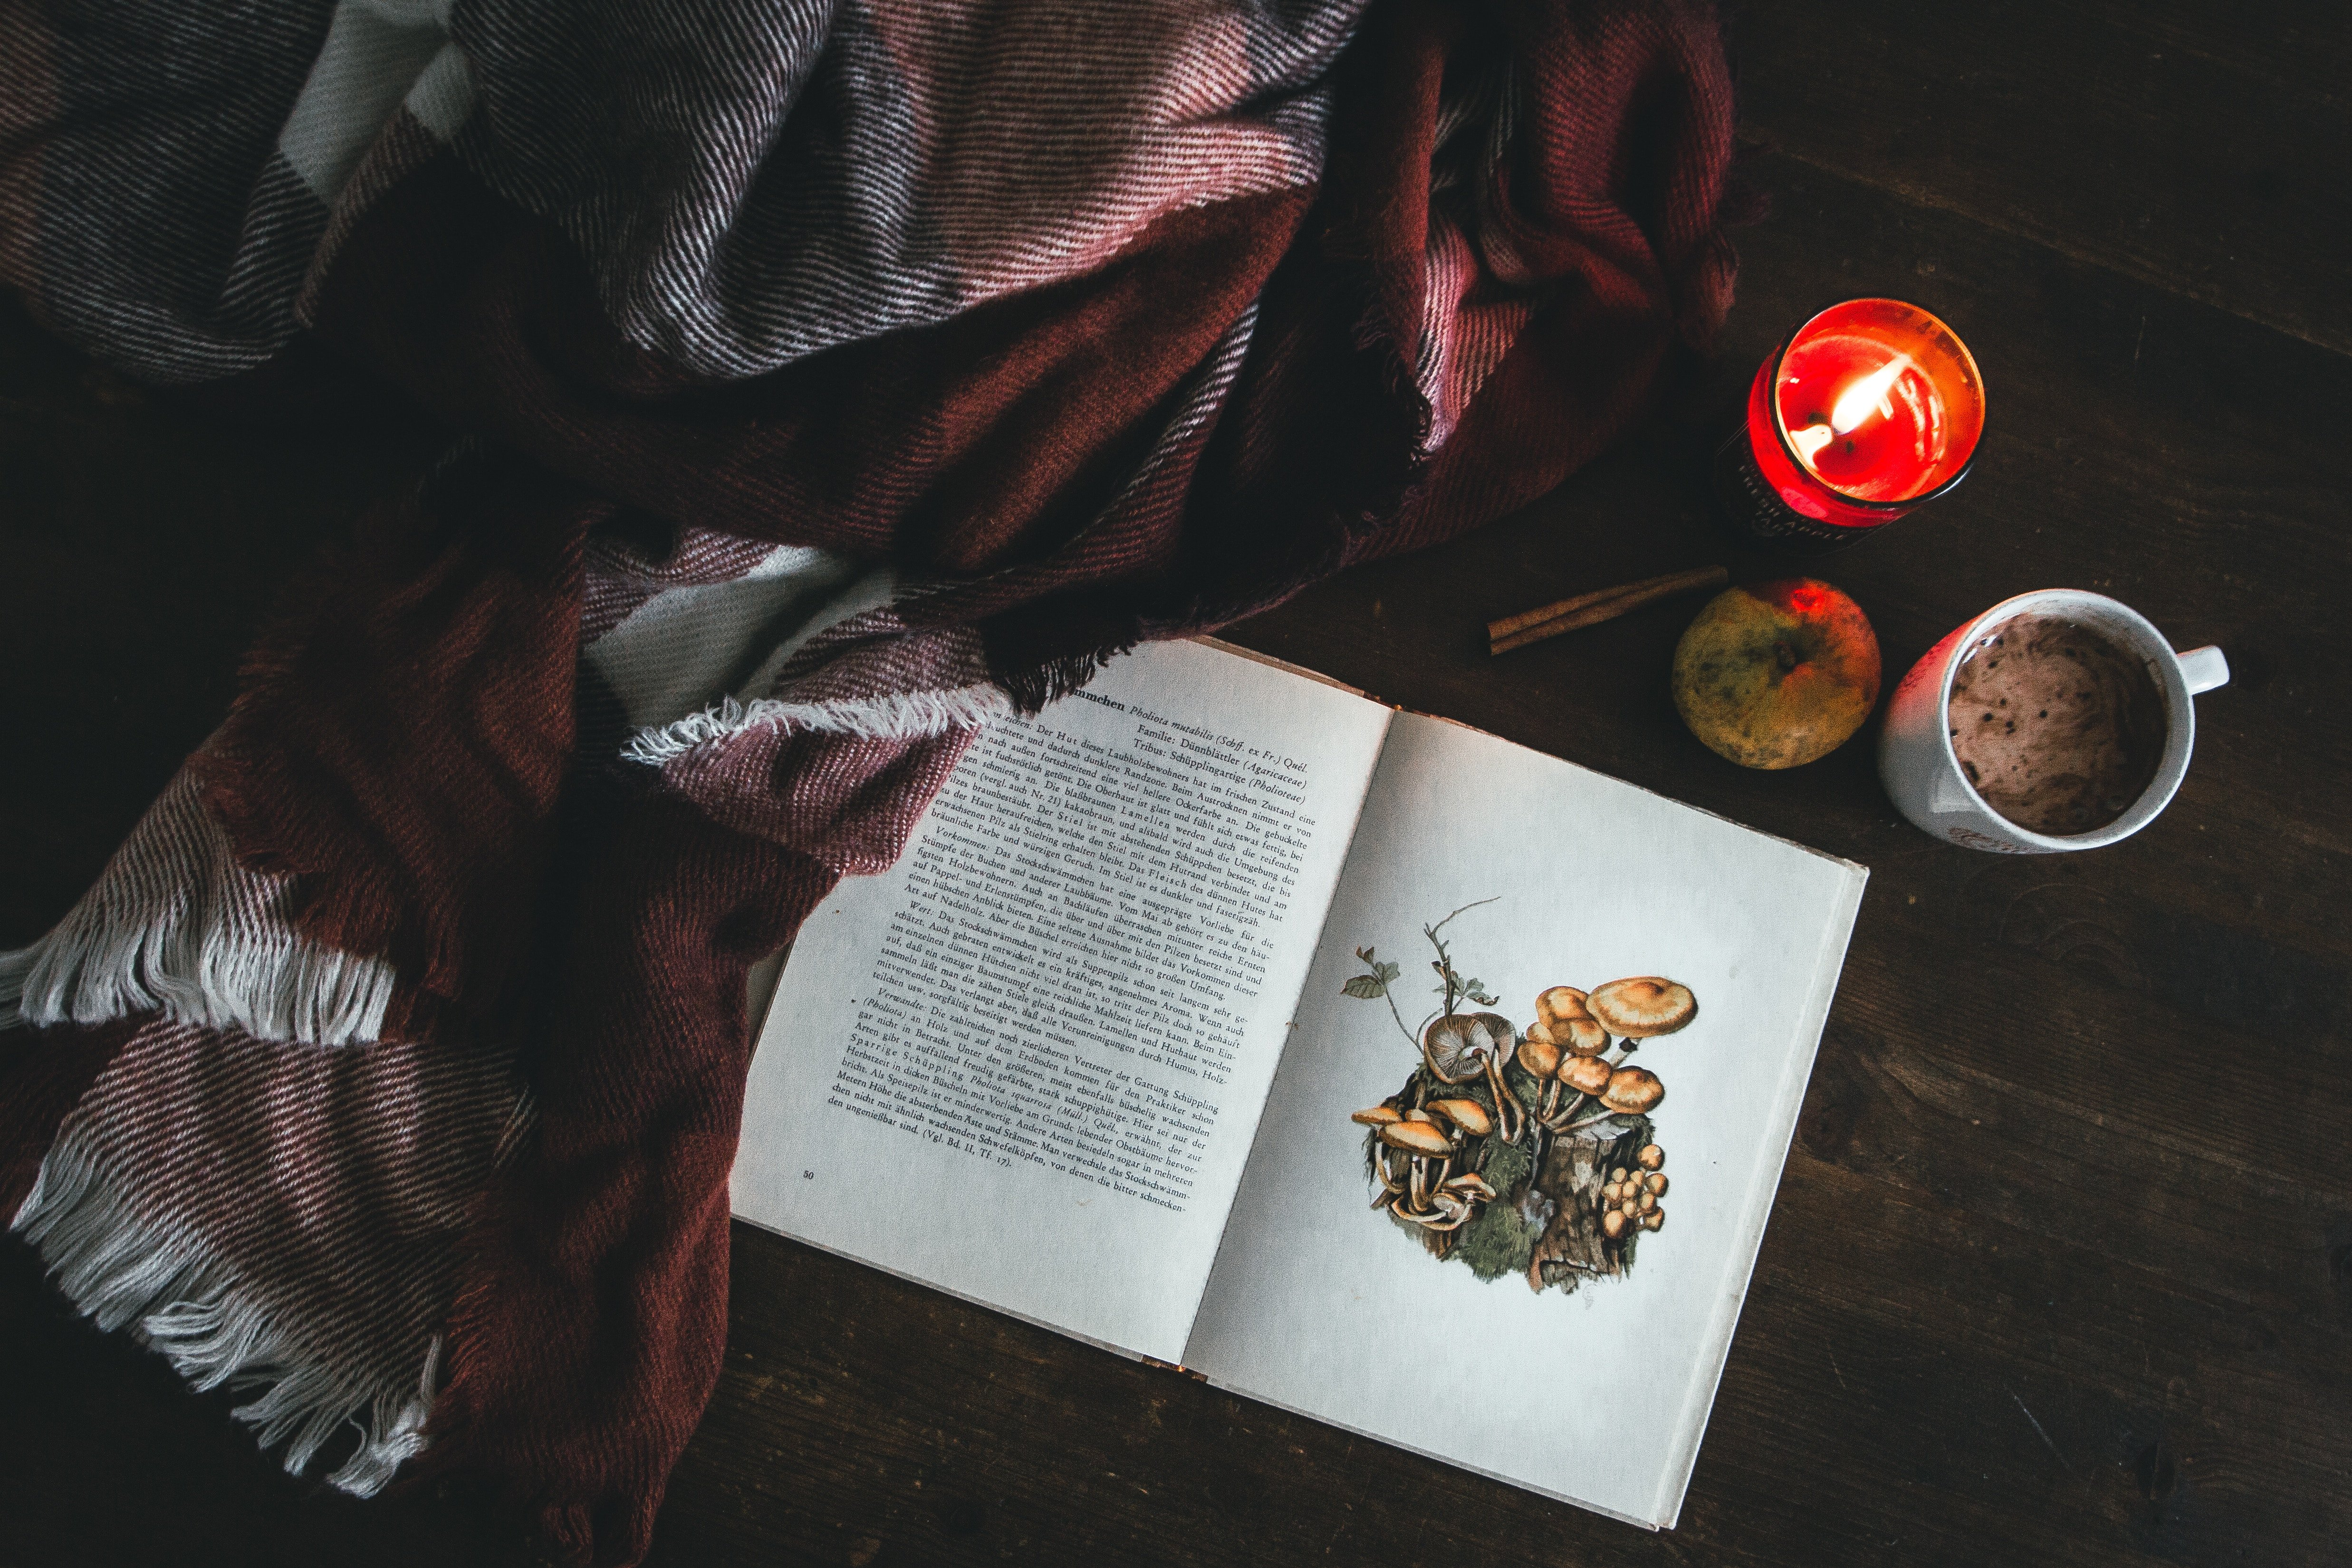 How To Focus Better While Reading